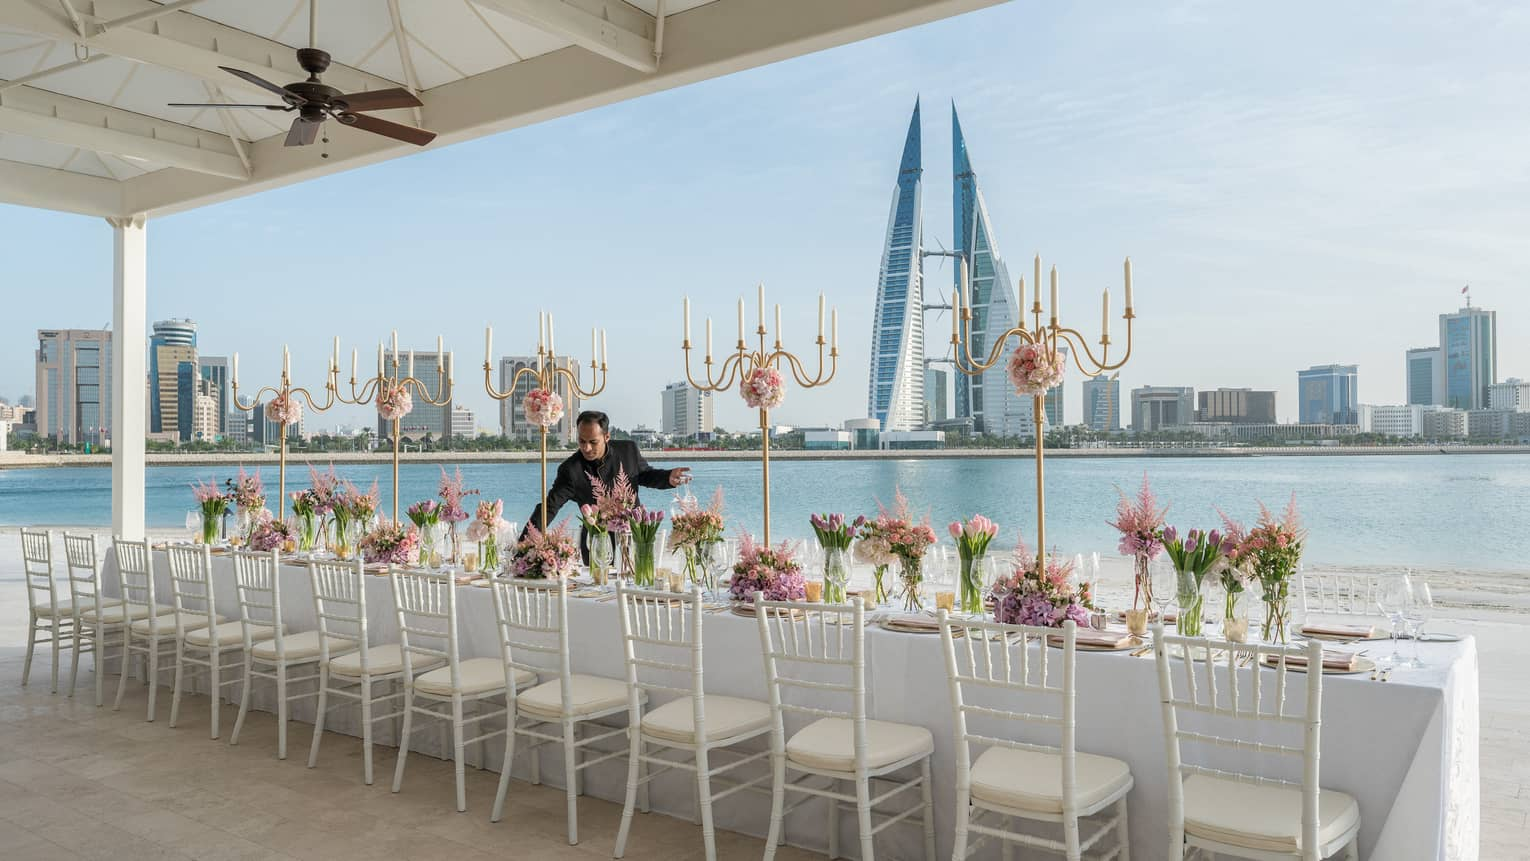 Hotel staff sets long wedding dining table by waterfront, city skyline in background